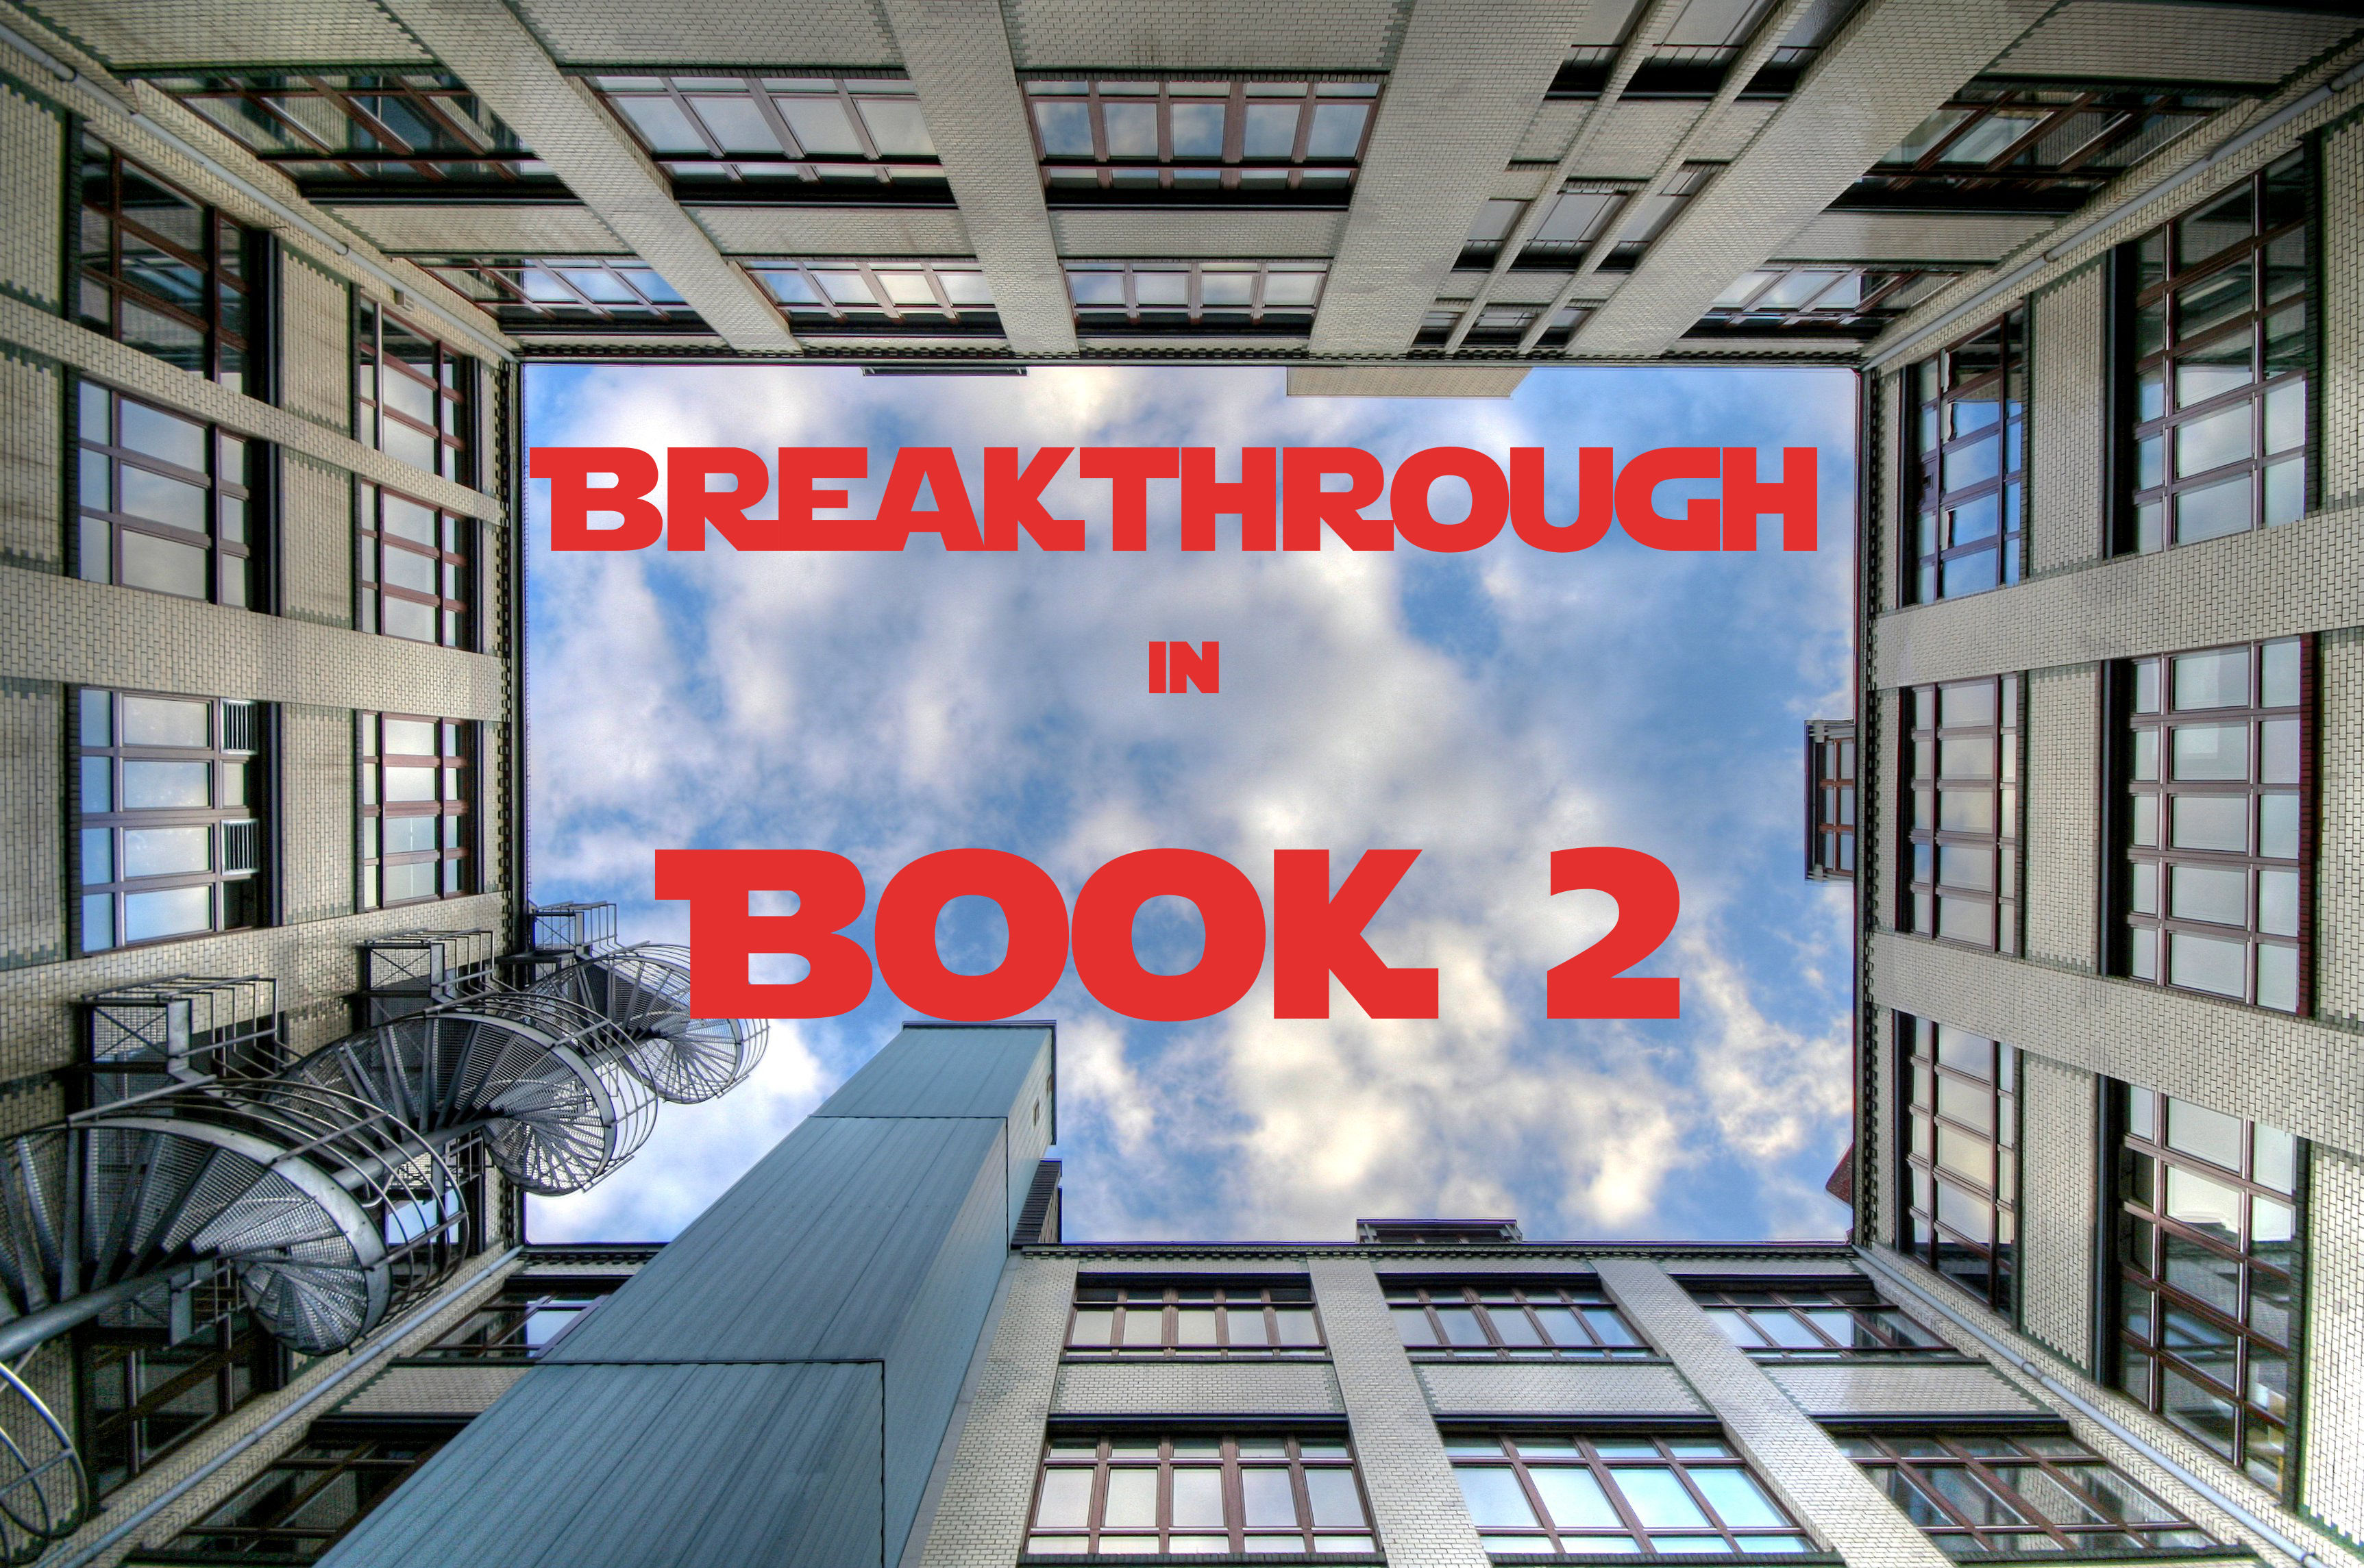 BreakthroughInBook2